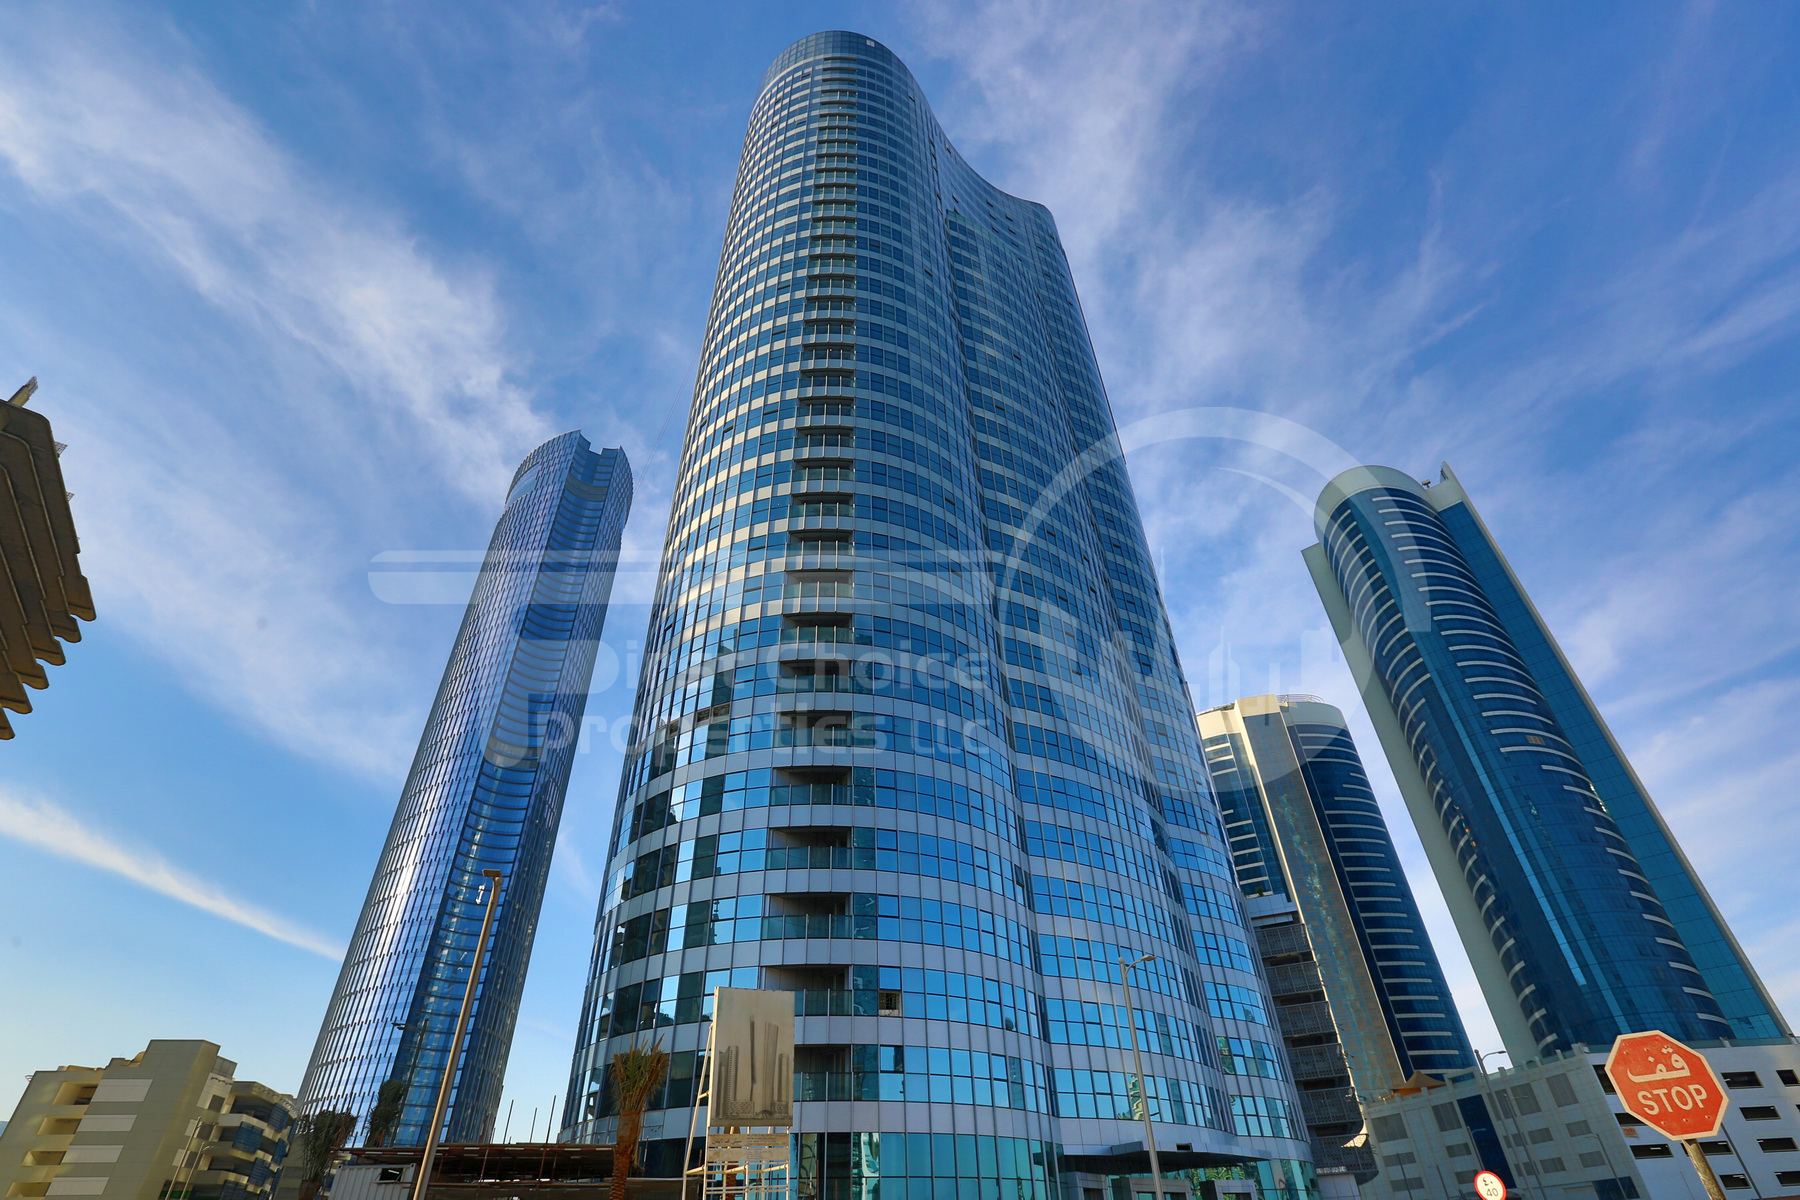 Studio - 1BR - 2BR - 3BR Apartment - Abu Dhabi - UAE - Al Reem Island - City of Lights - C2 Building - C3 Building - Outside View (38).JPG